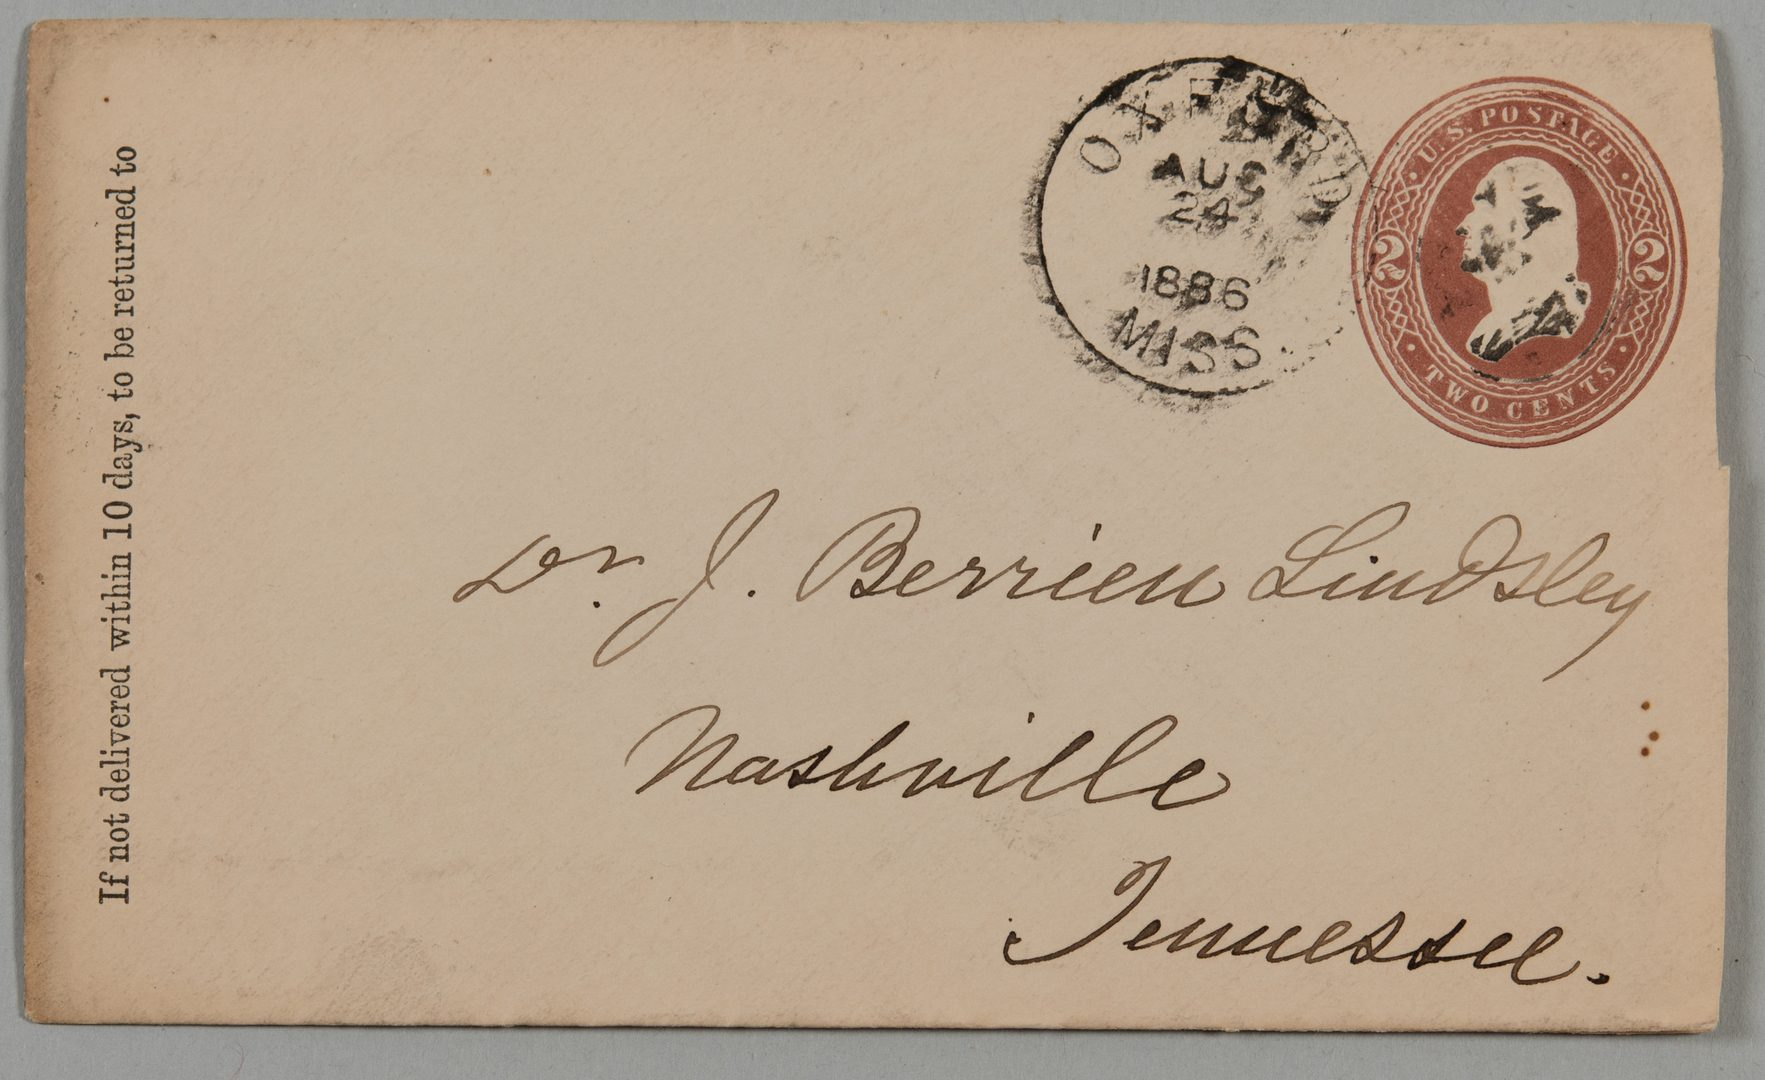 Lot 221: CSA Genls. letters to J. B. Lindsley: Stewart, Wheeler, Bate